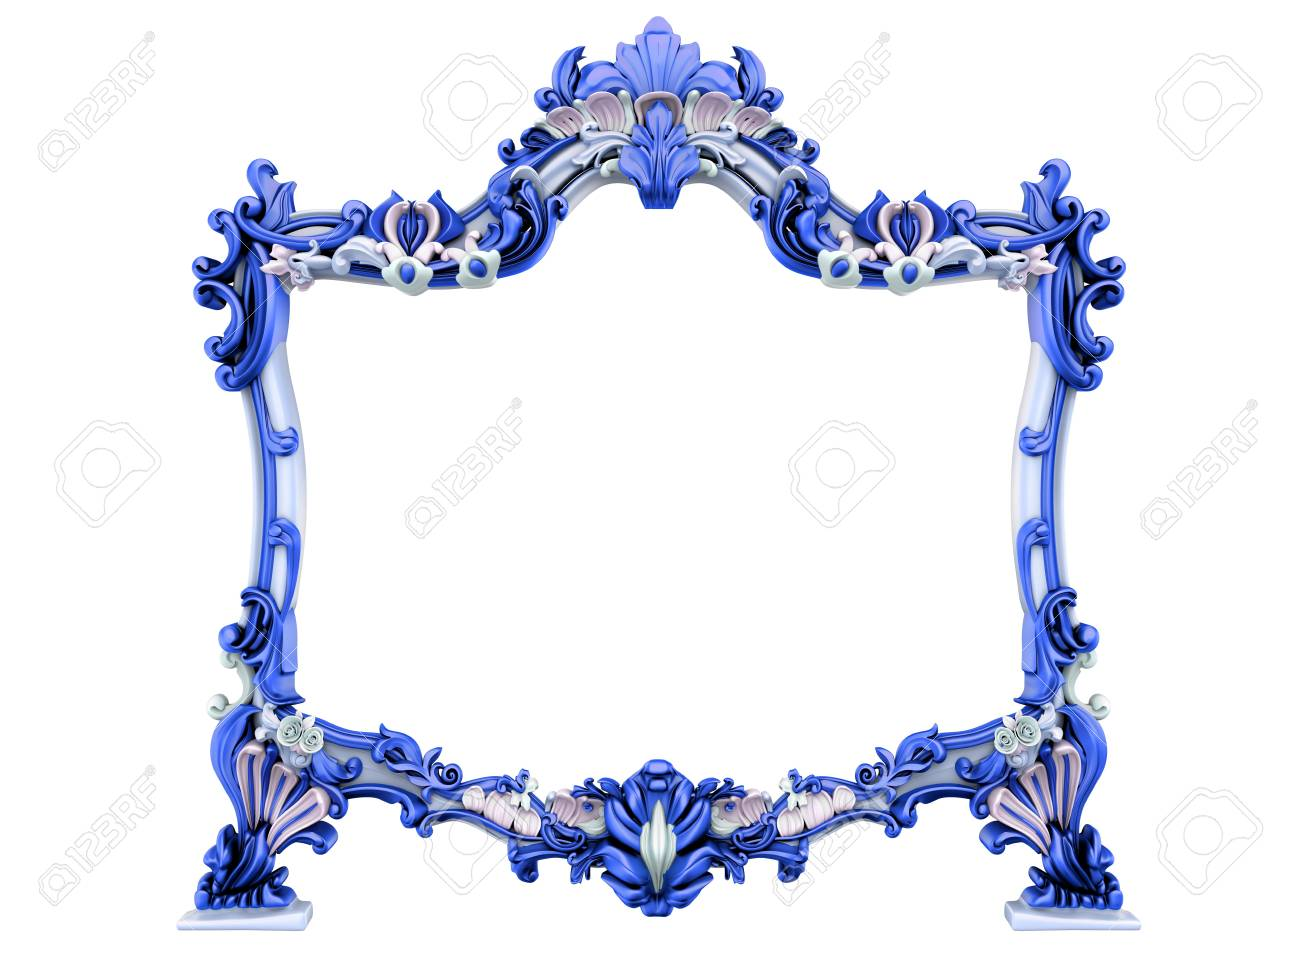 3d image of antique frame. White background. Stock Photo - 3572287